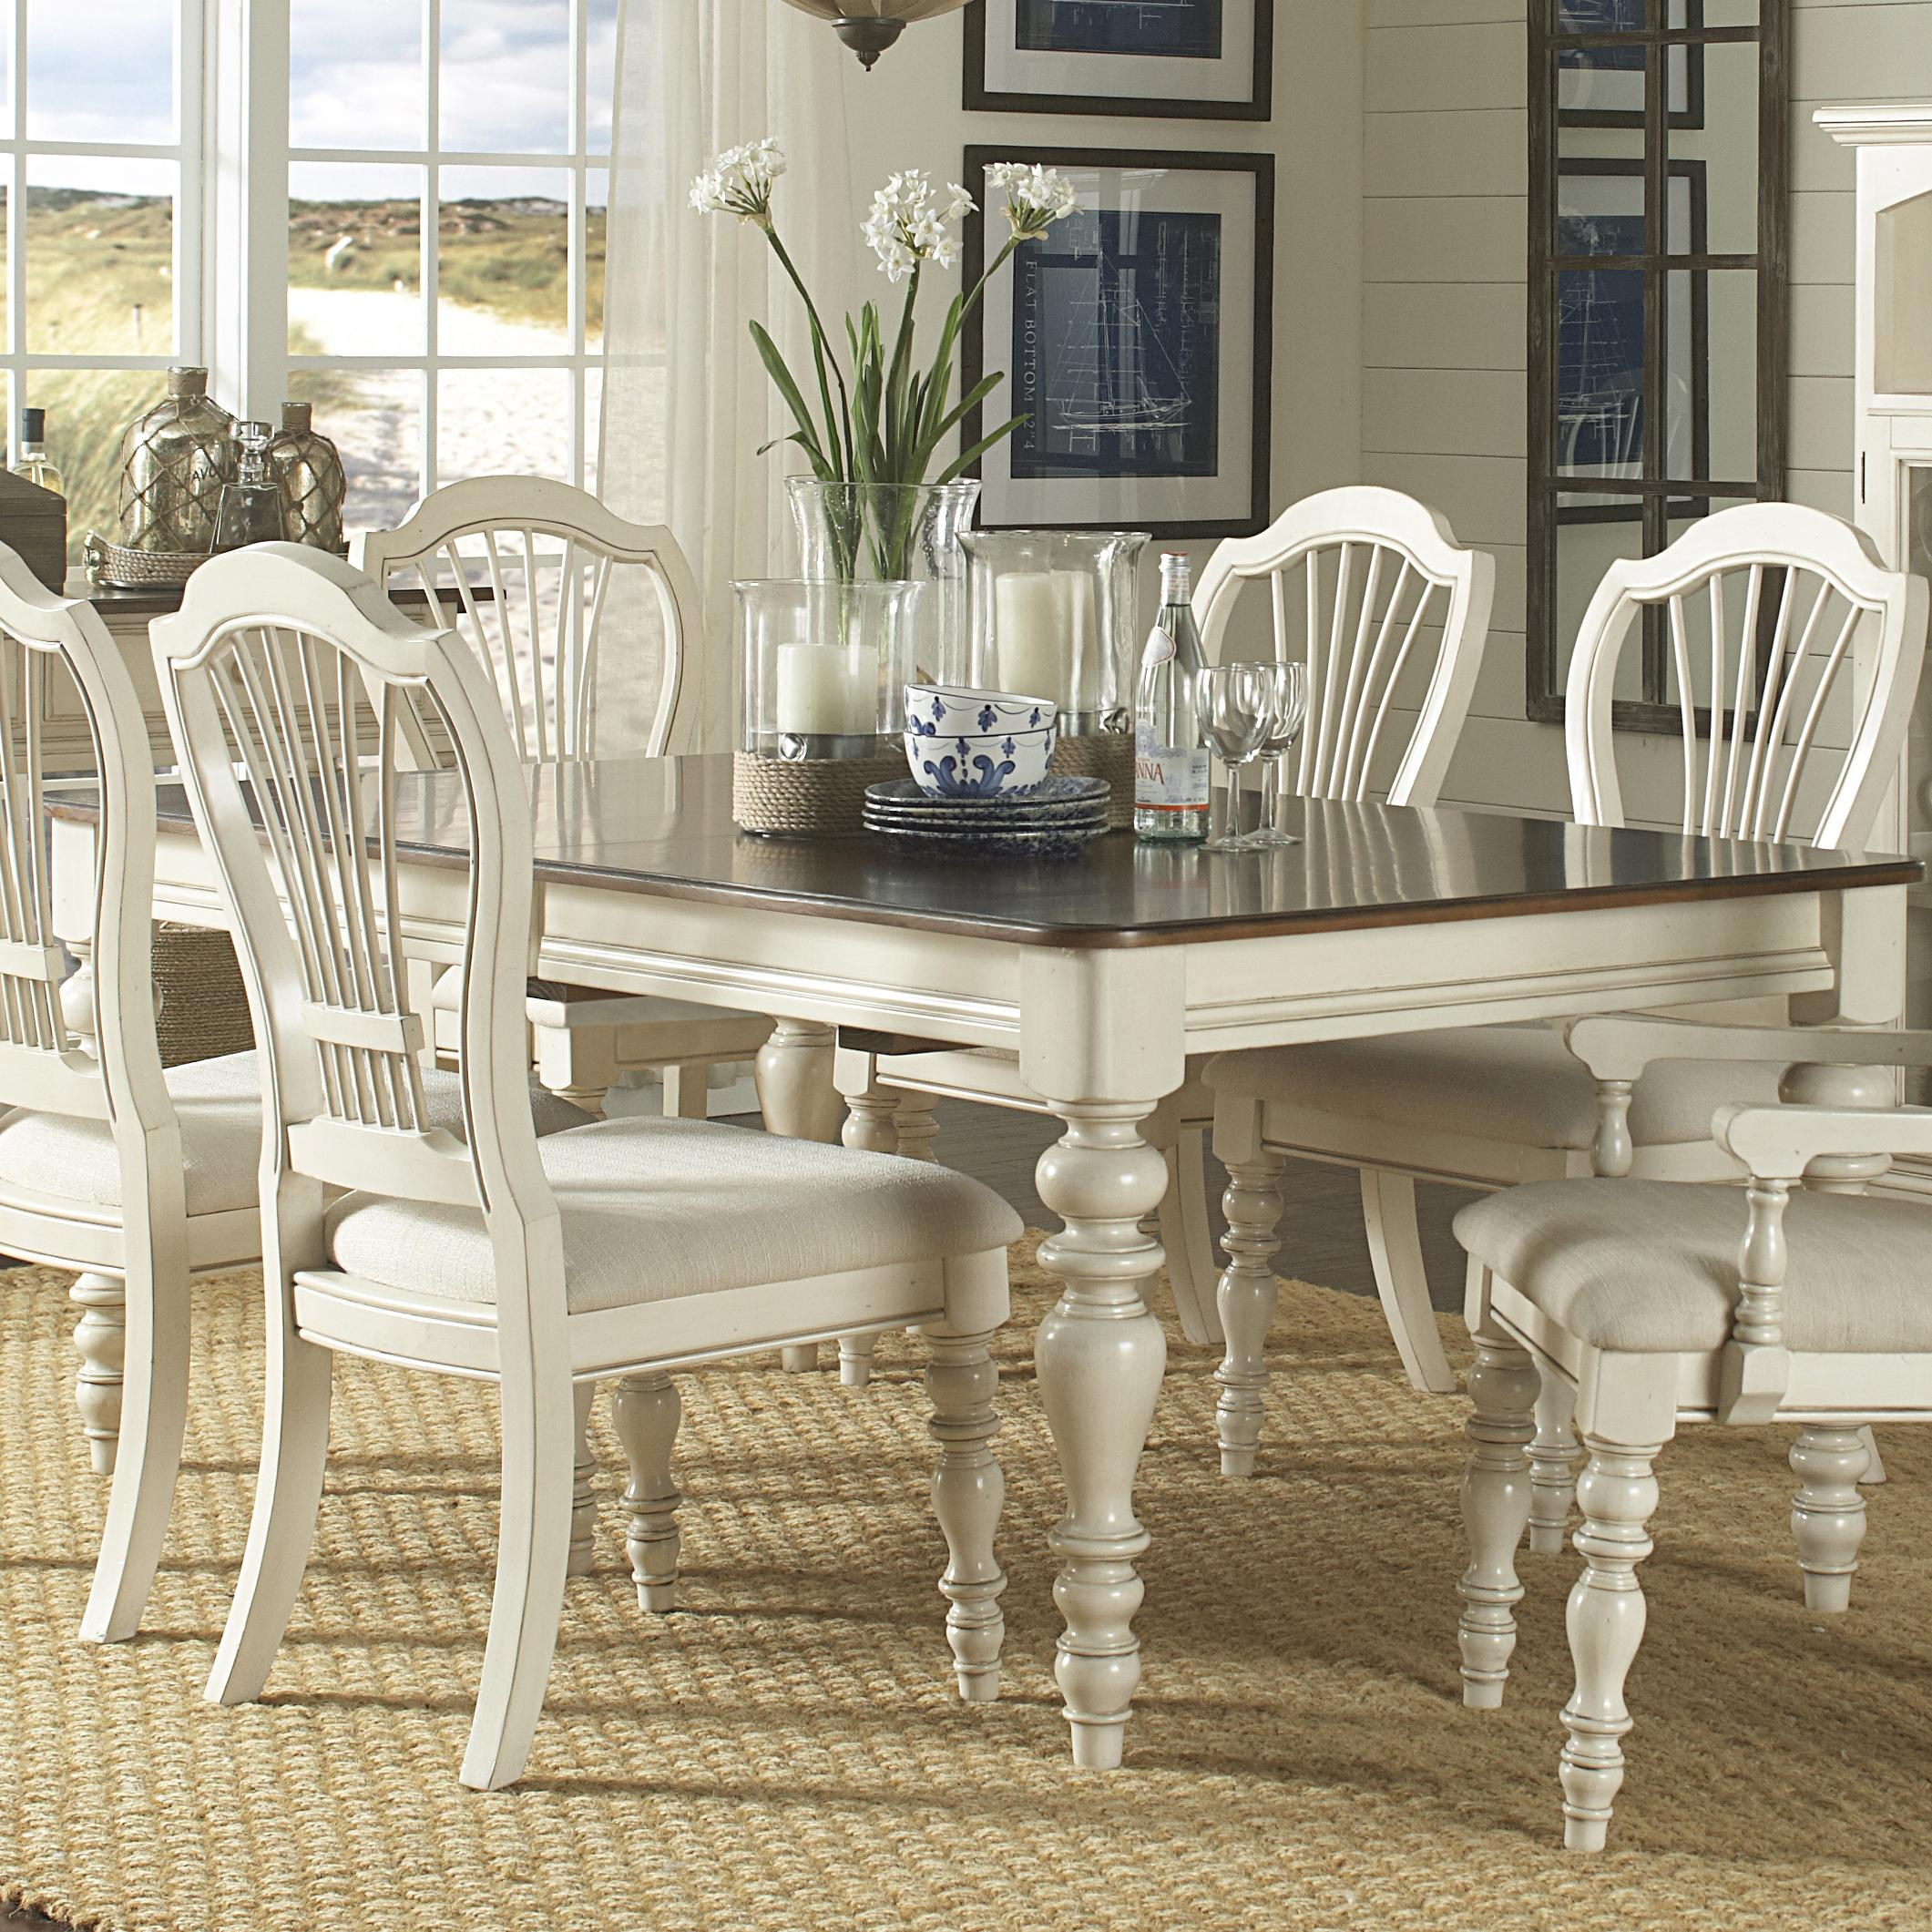 Fullsize Of Dining Room Island Tables